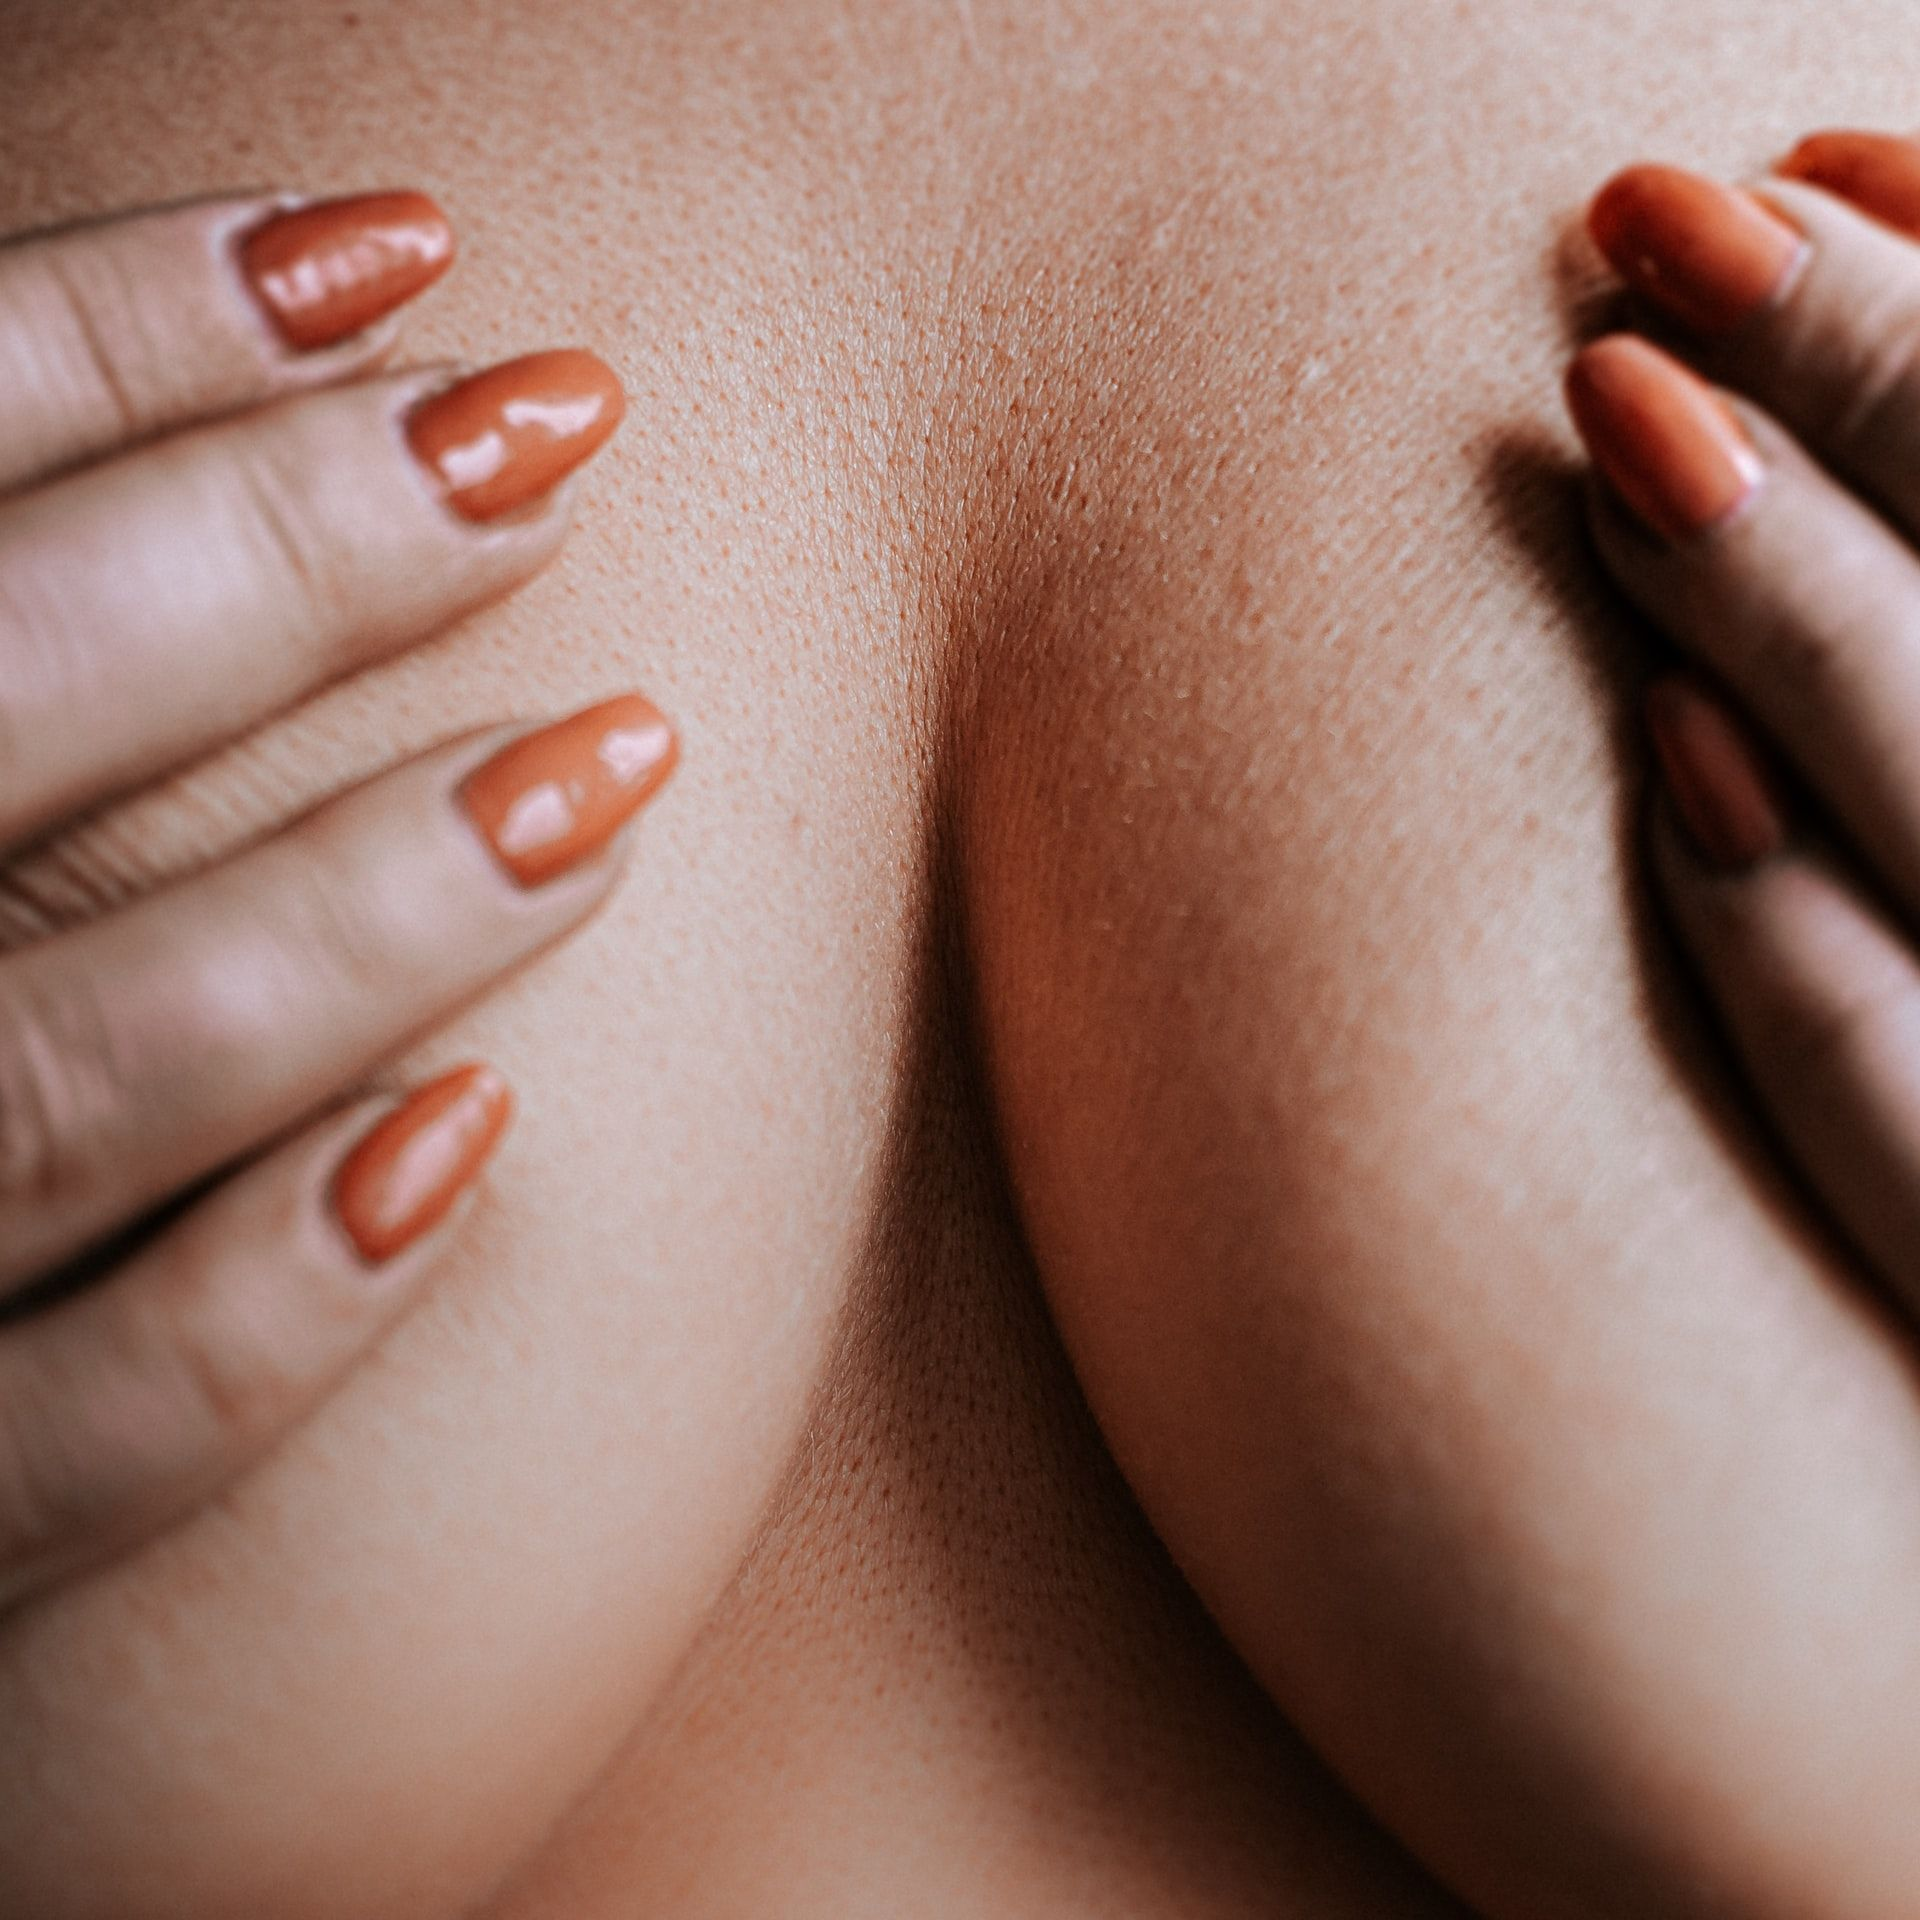 Woman covering her breasts